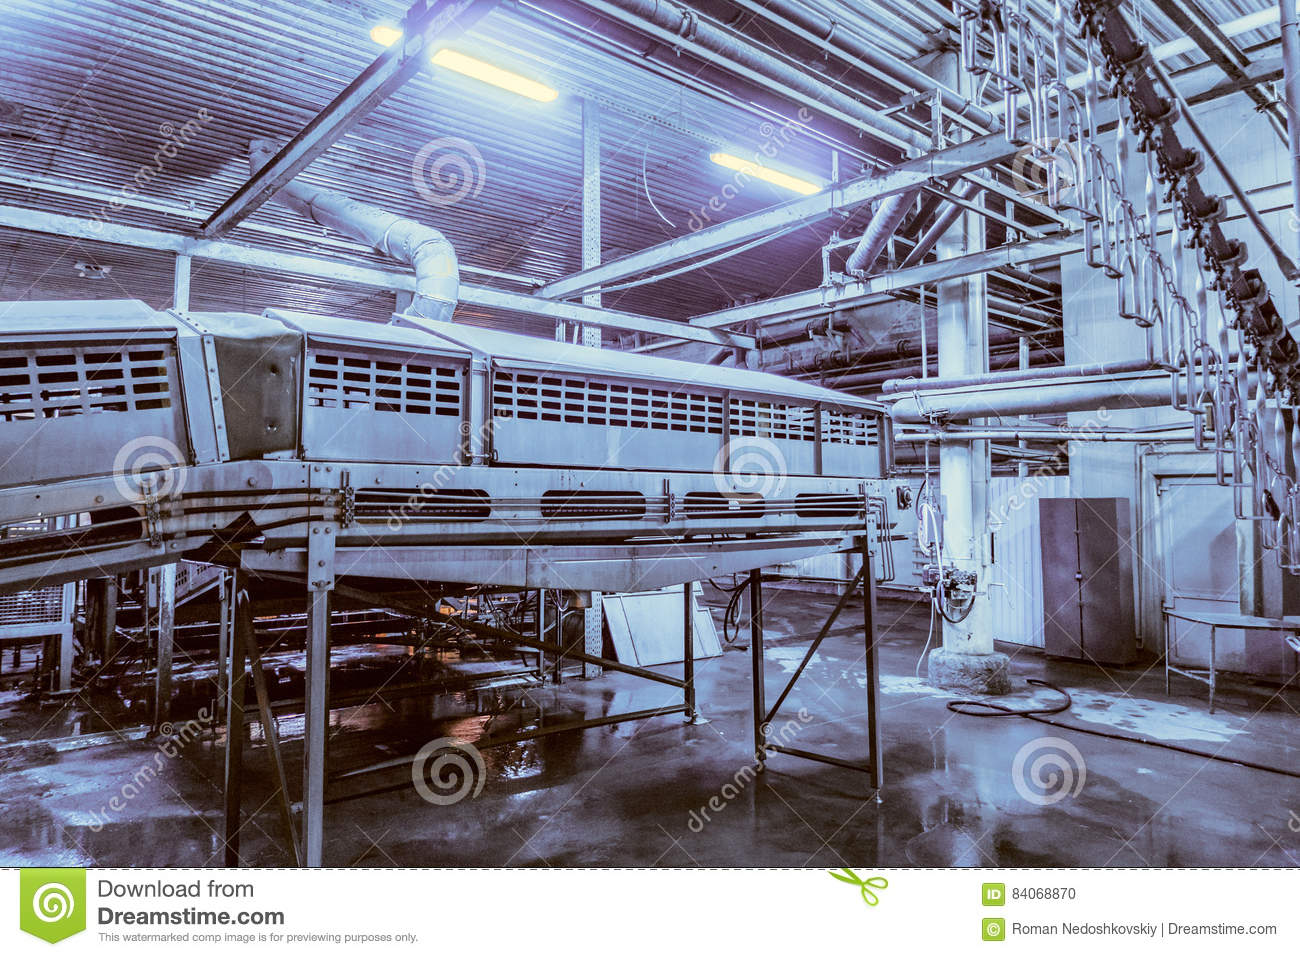 Stupendous Poultry Slaughterhouse Stock Photo Image Of Factory 84068870 Download Free Architecture Designs Rallybritishbridgeorg